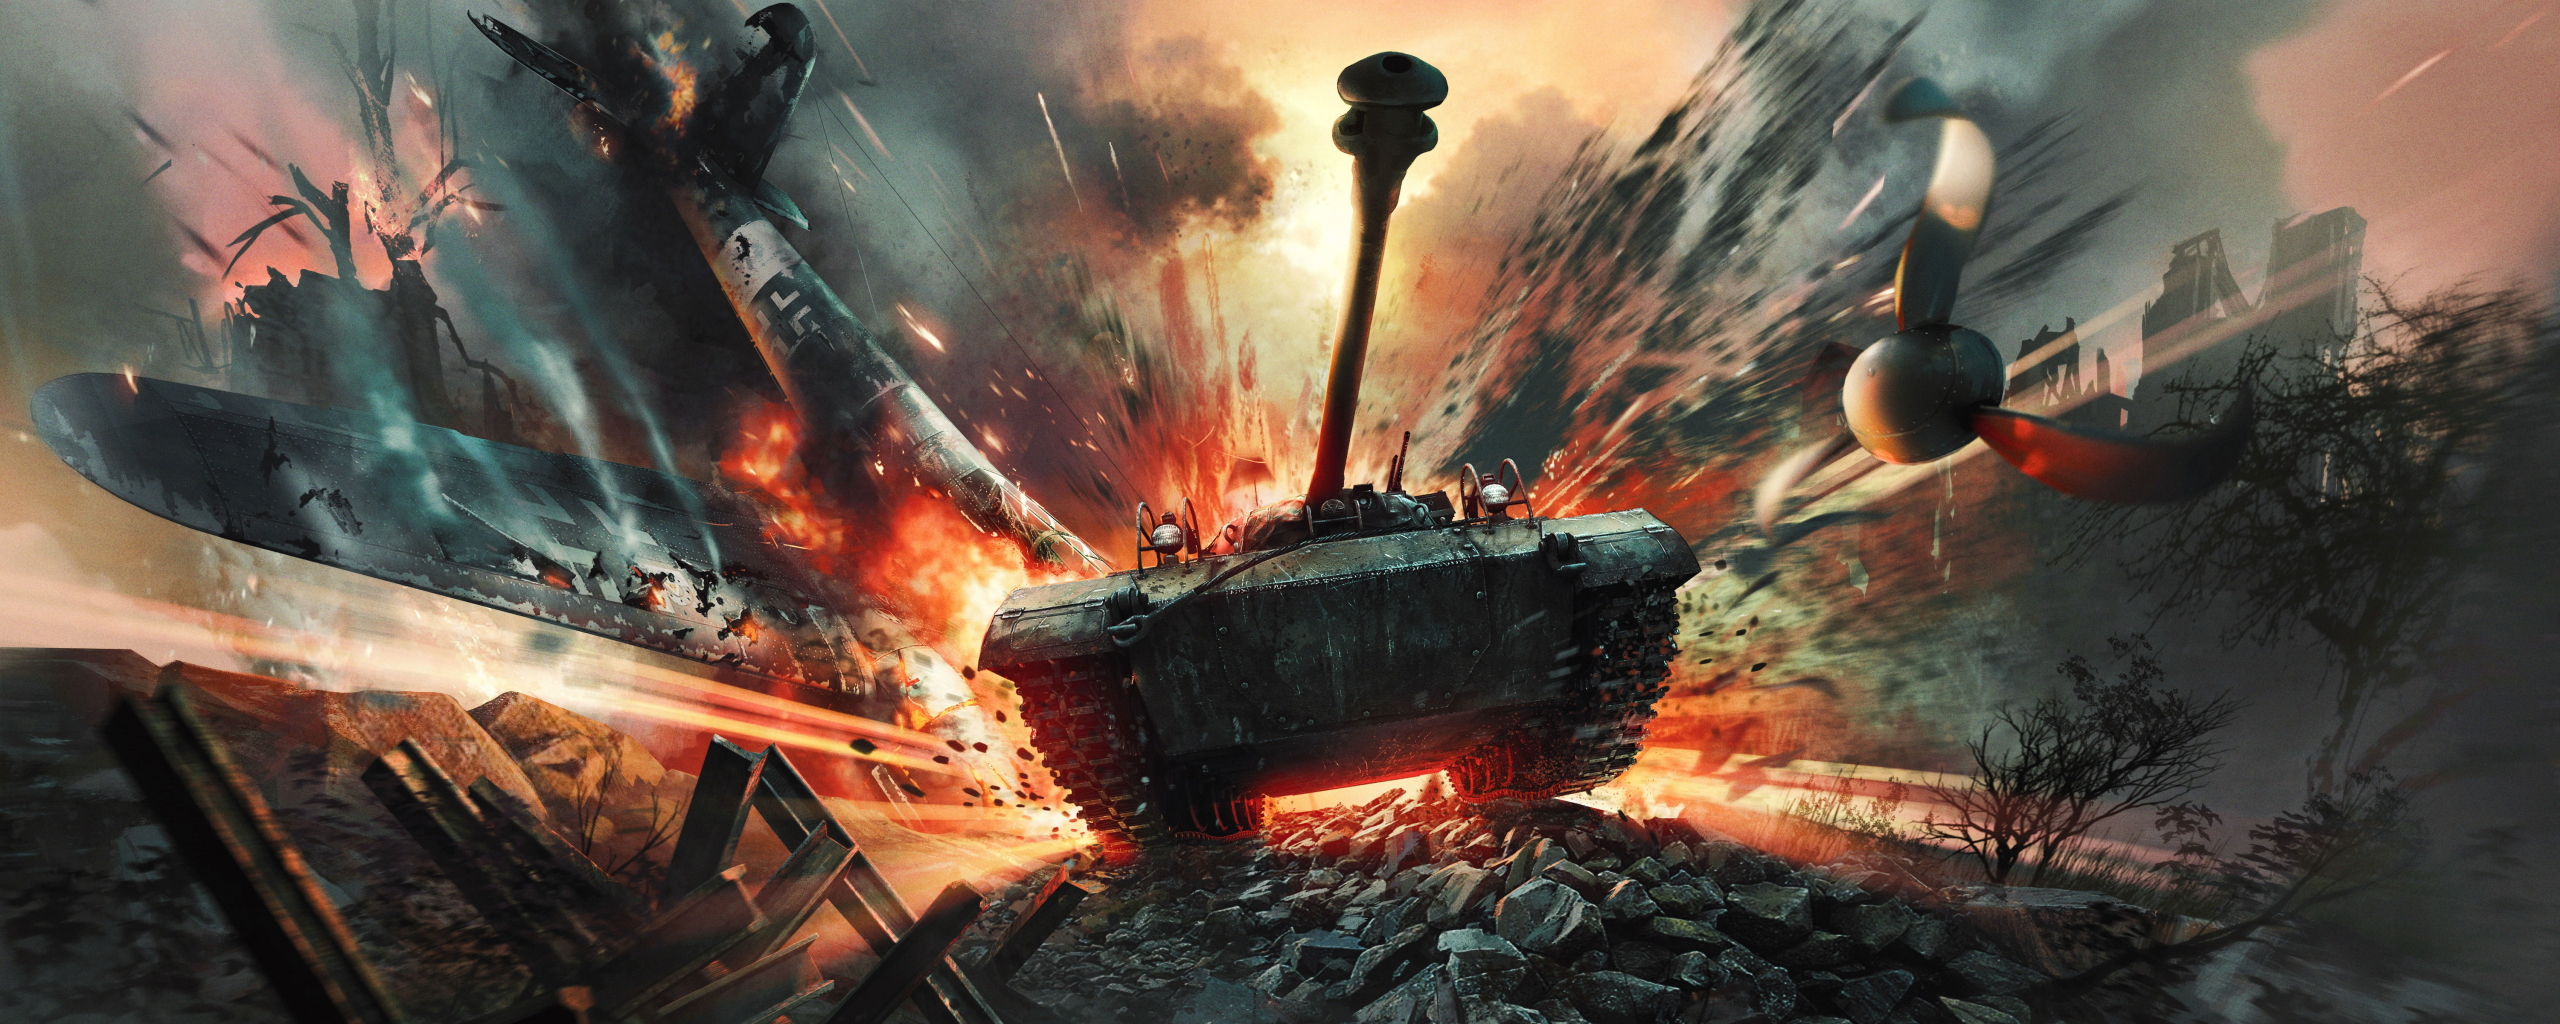 War Thunder - Play online for free   Youdagames.com